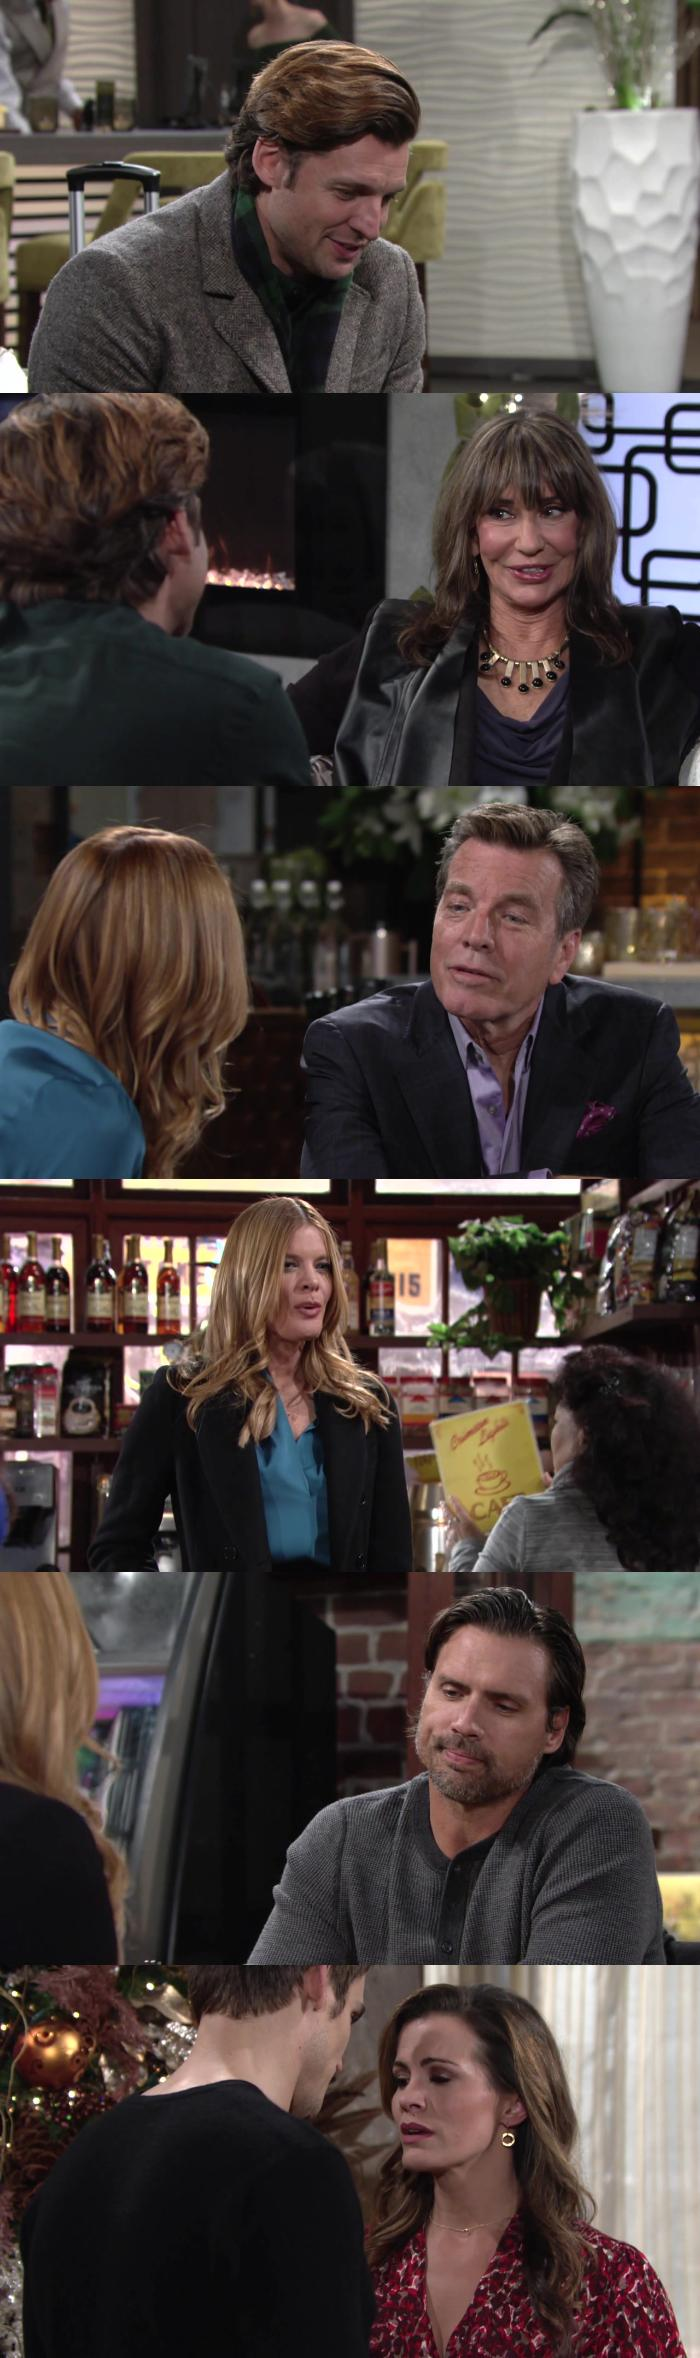 The Young and The restless s47e81 720p web x264-w4f